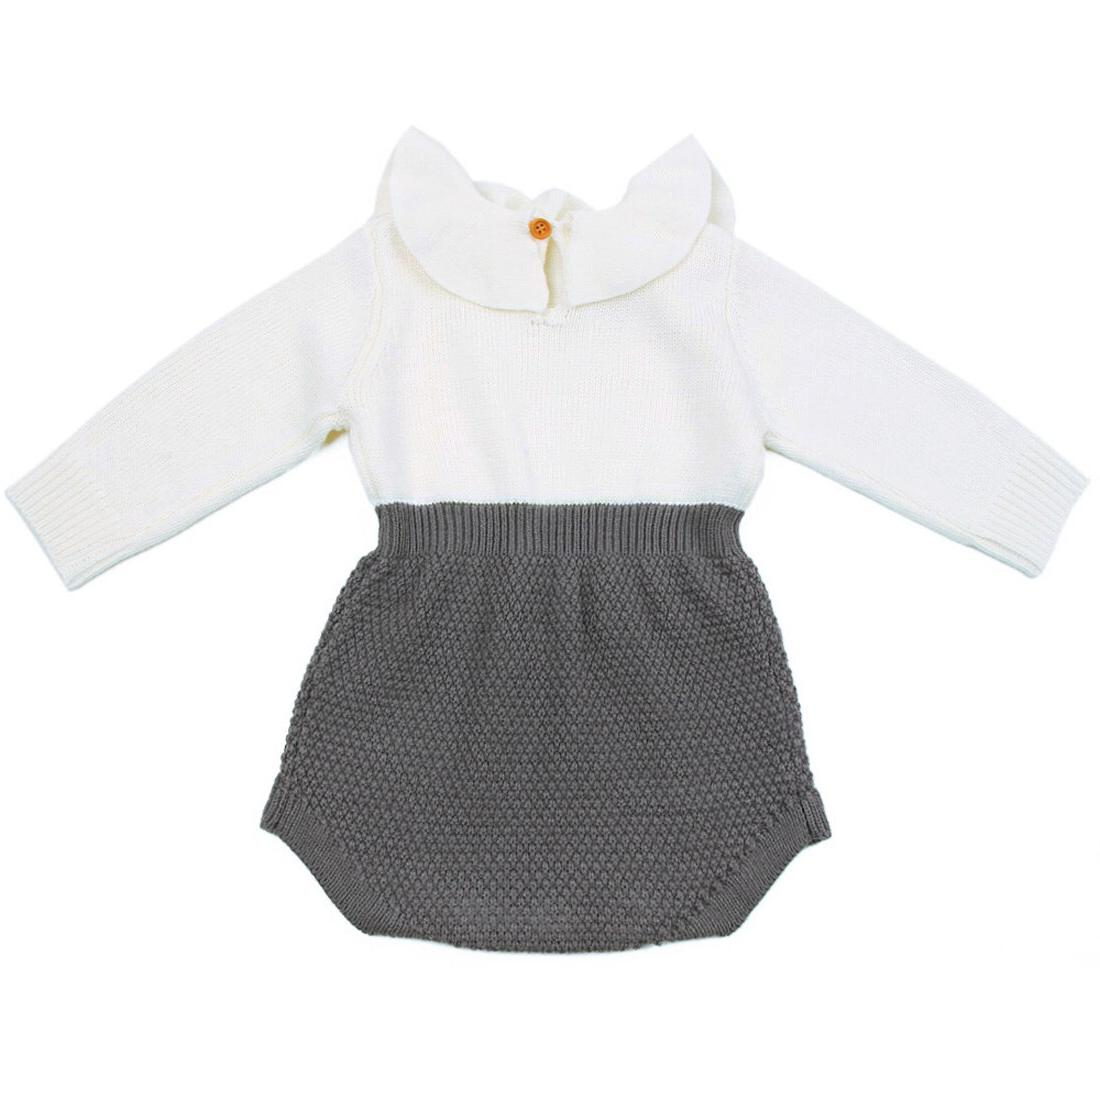 2019 Autumn Winter <font><b>Baby</b></font> Clothes Toddler <font><b>Girl</b></font> Outfits 0-24M